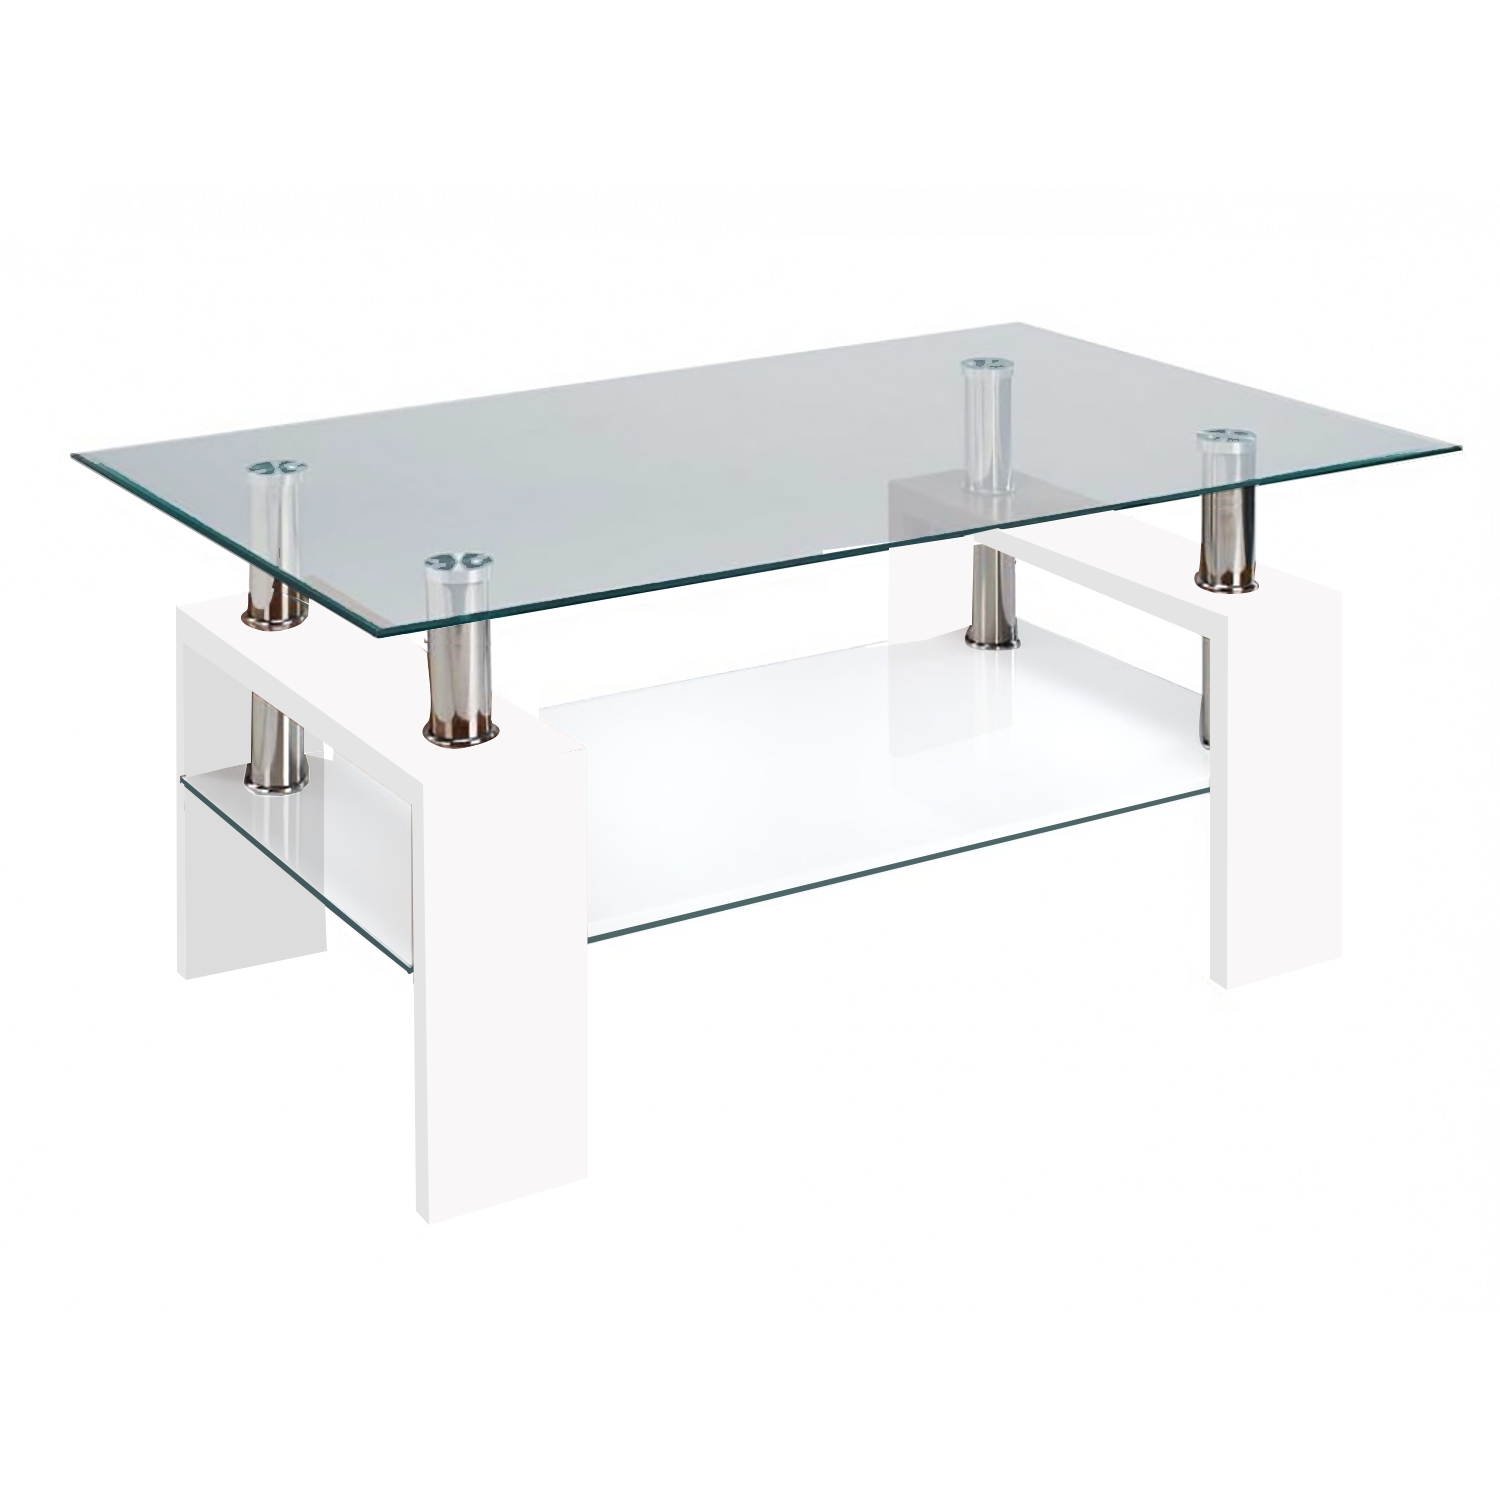 2017 Glass Coffee Table With Shelf Intended For Large Glass Black Glass Coffee Table With Shelf Large Glass Glass (View 2 of 20)